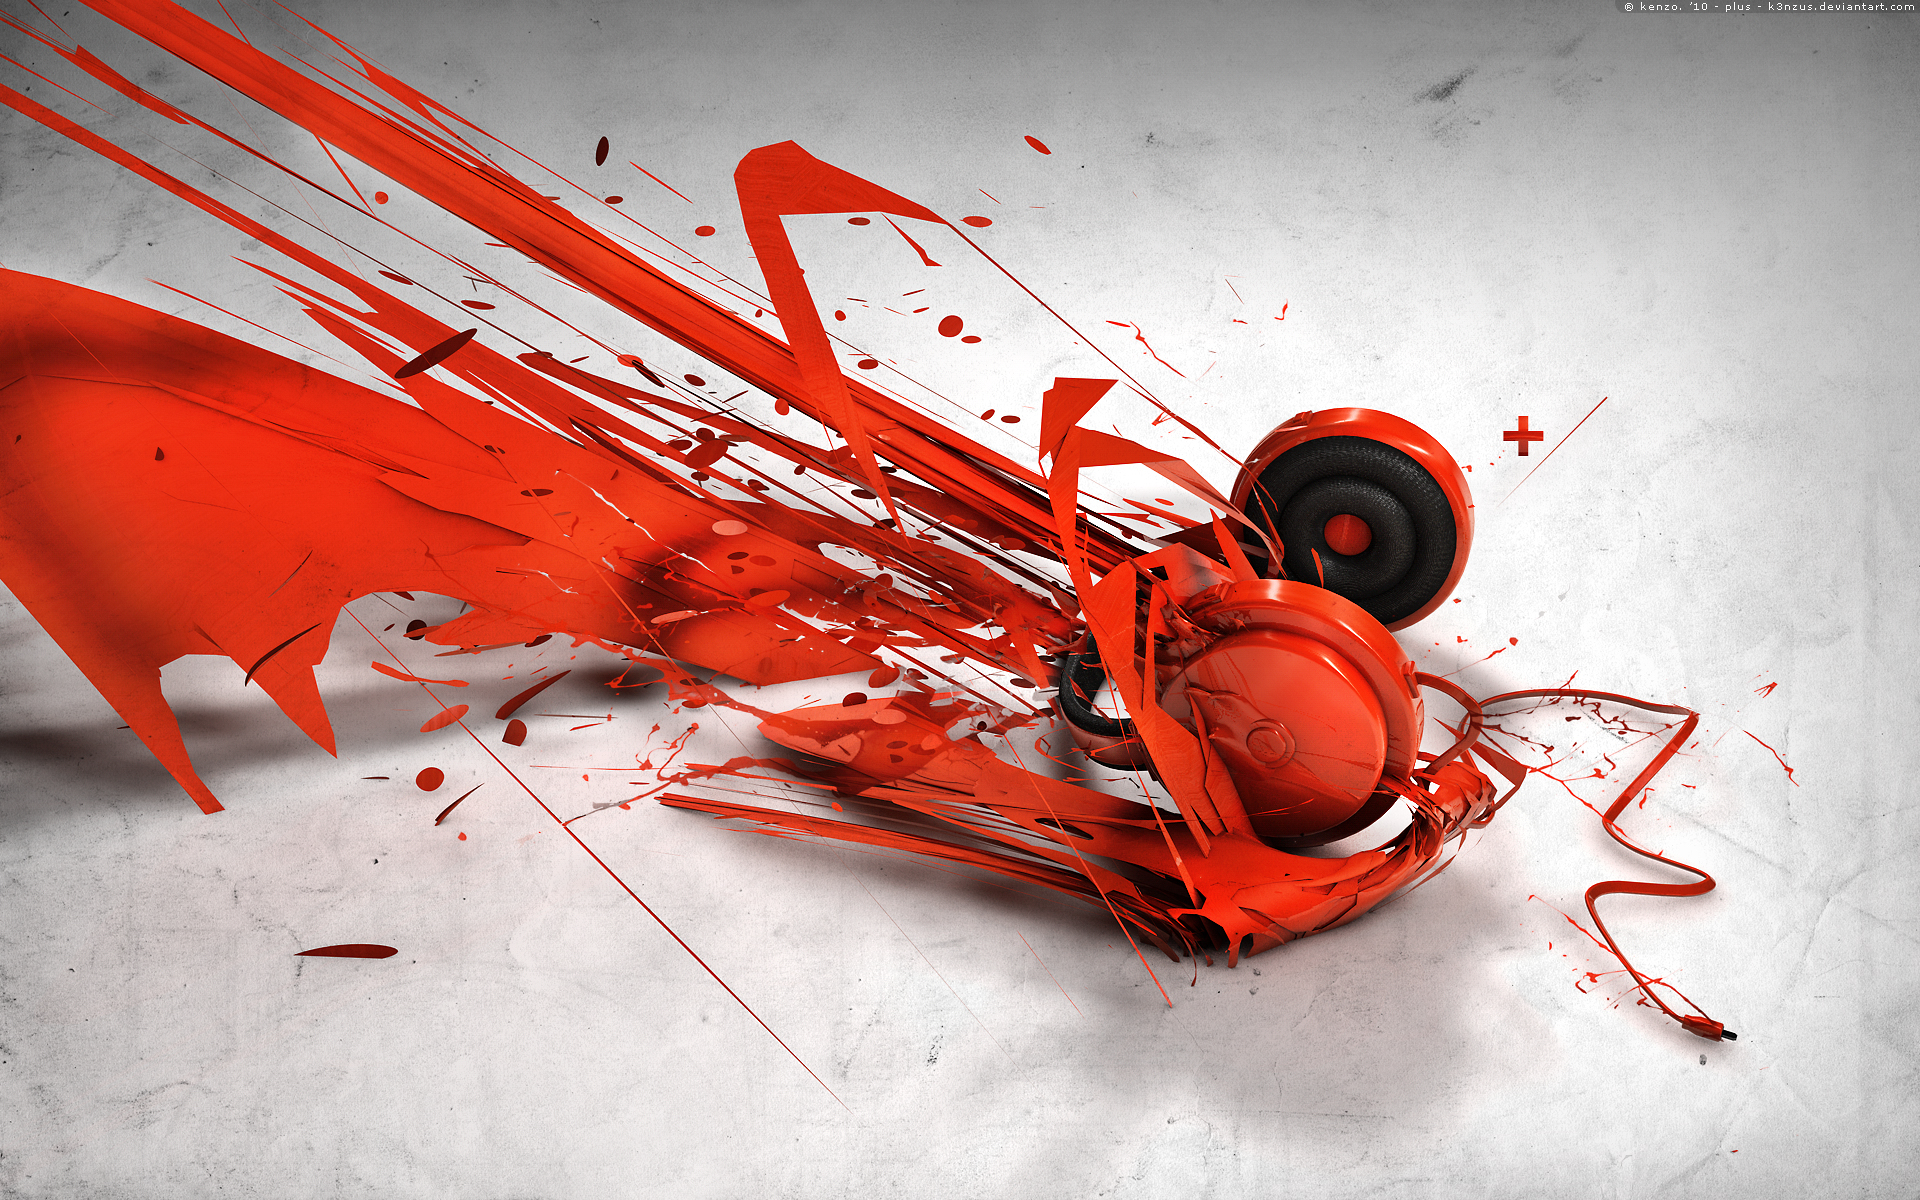 Abstract Music Wallpaper Widescreen : Abstract Wallpaper - Tagzeo com